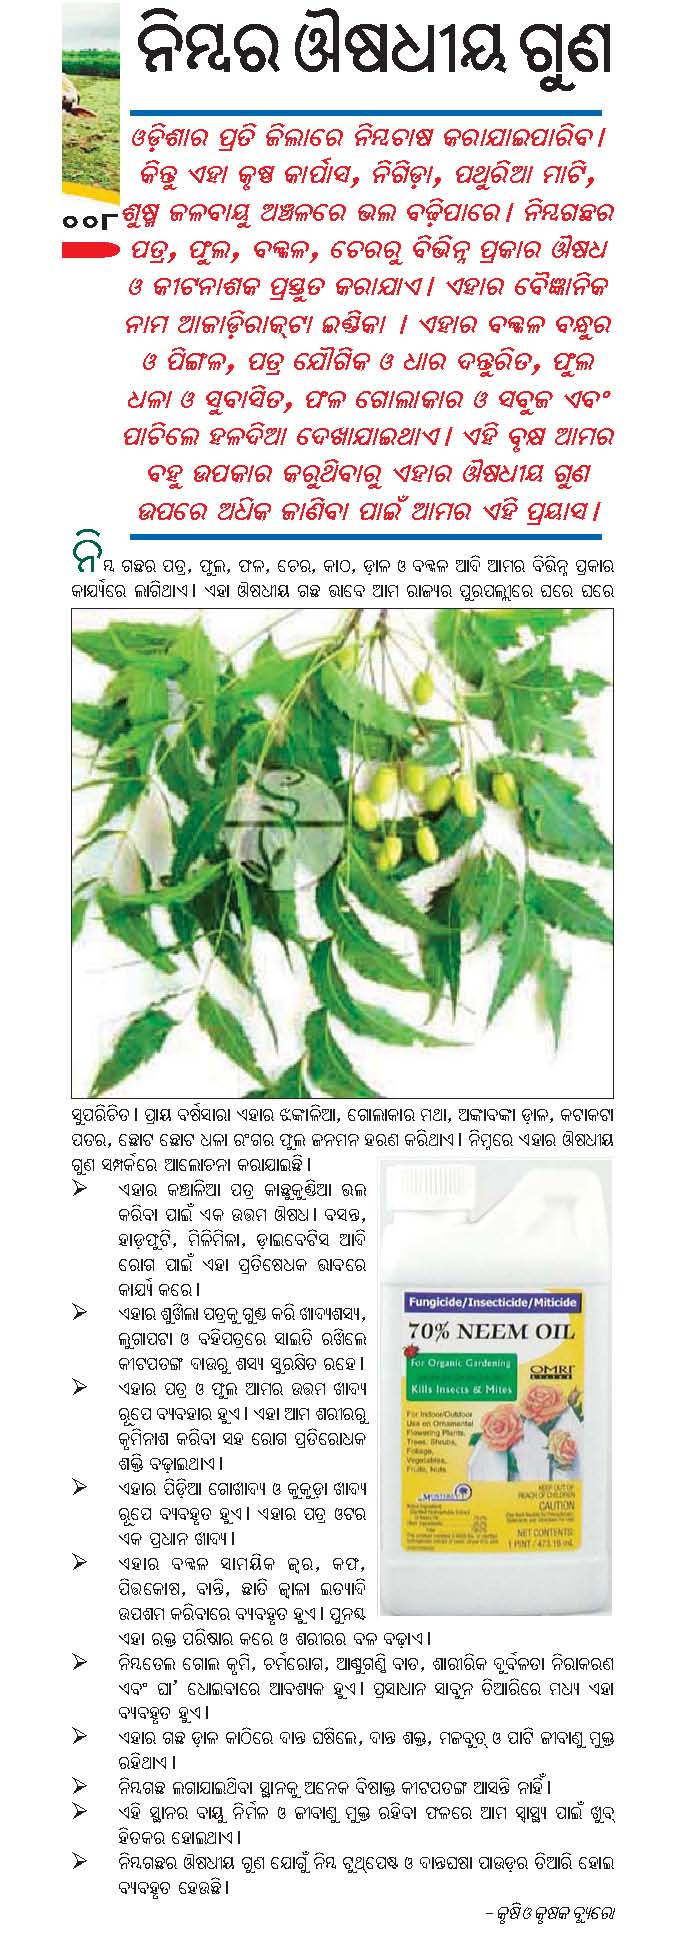 medicinal plants medicinal plants chitta comments off on medicinal effects of neem samaja